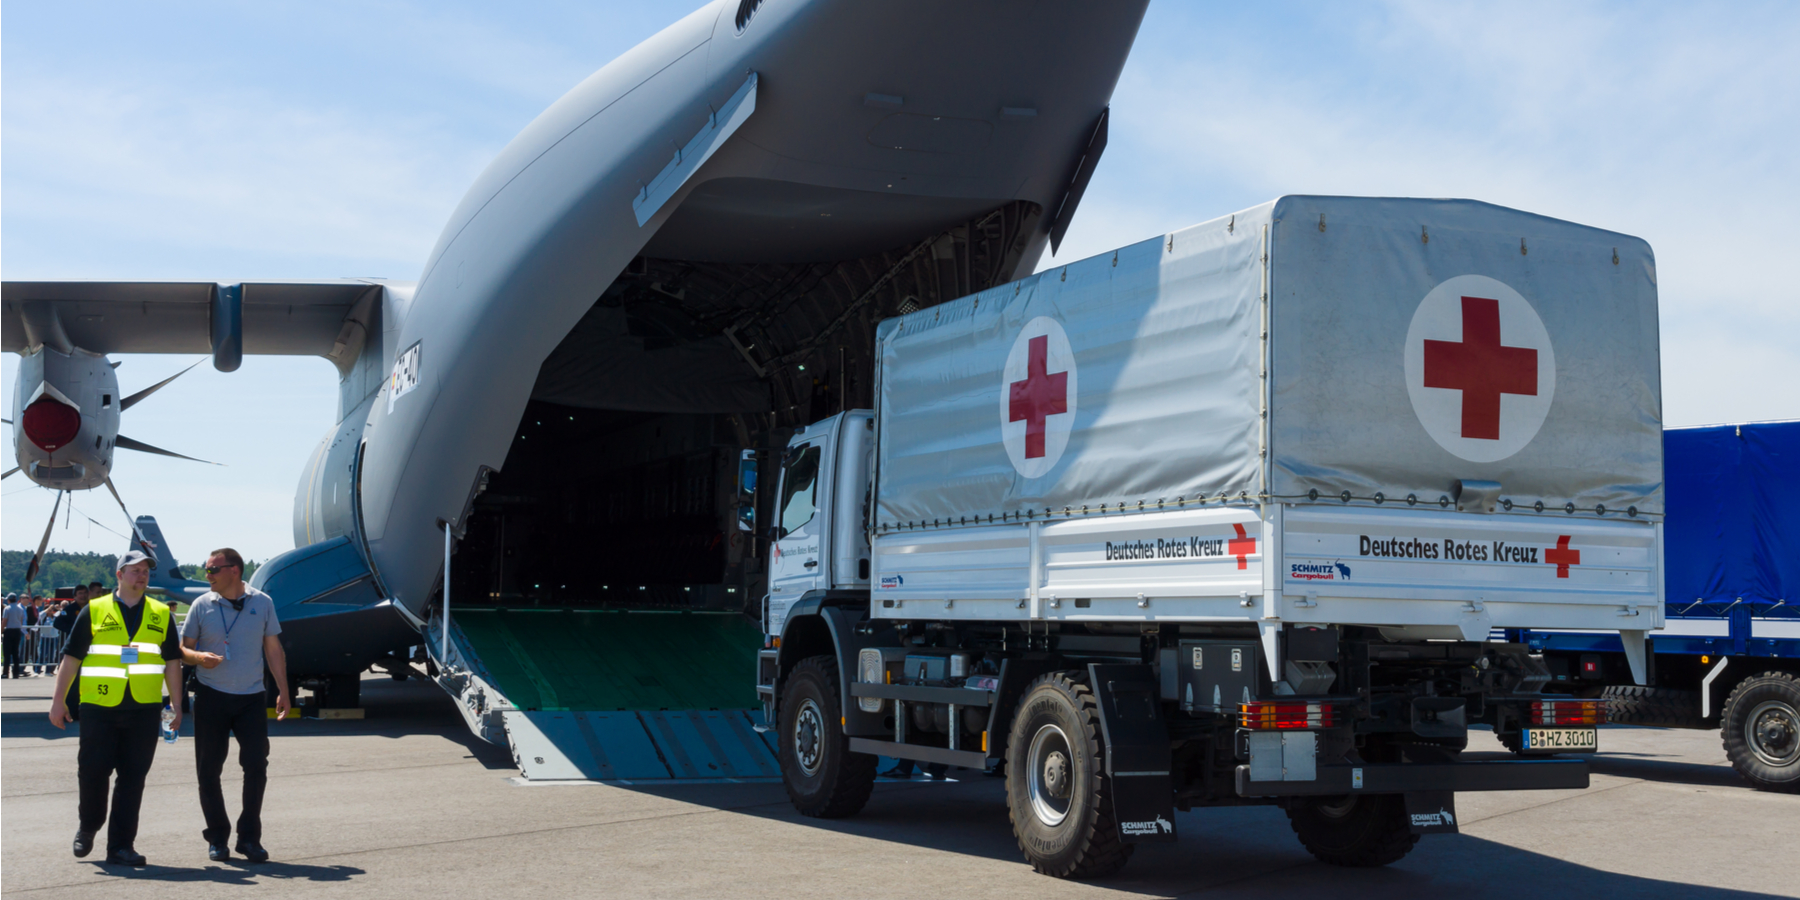 Equity or Minimum Standards in Humanitarian Aid: A Conflict